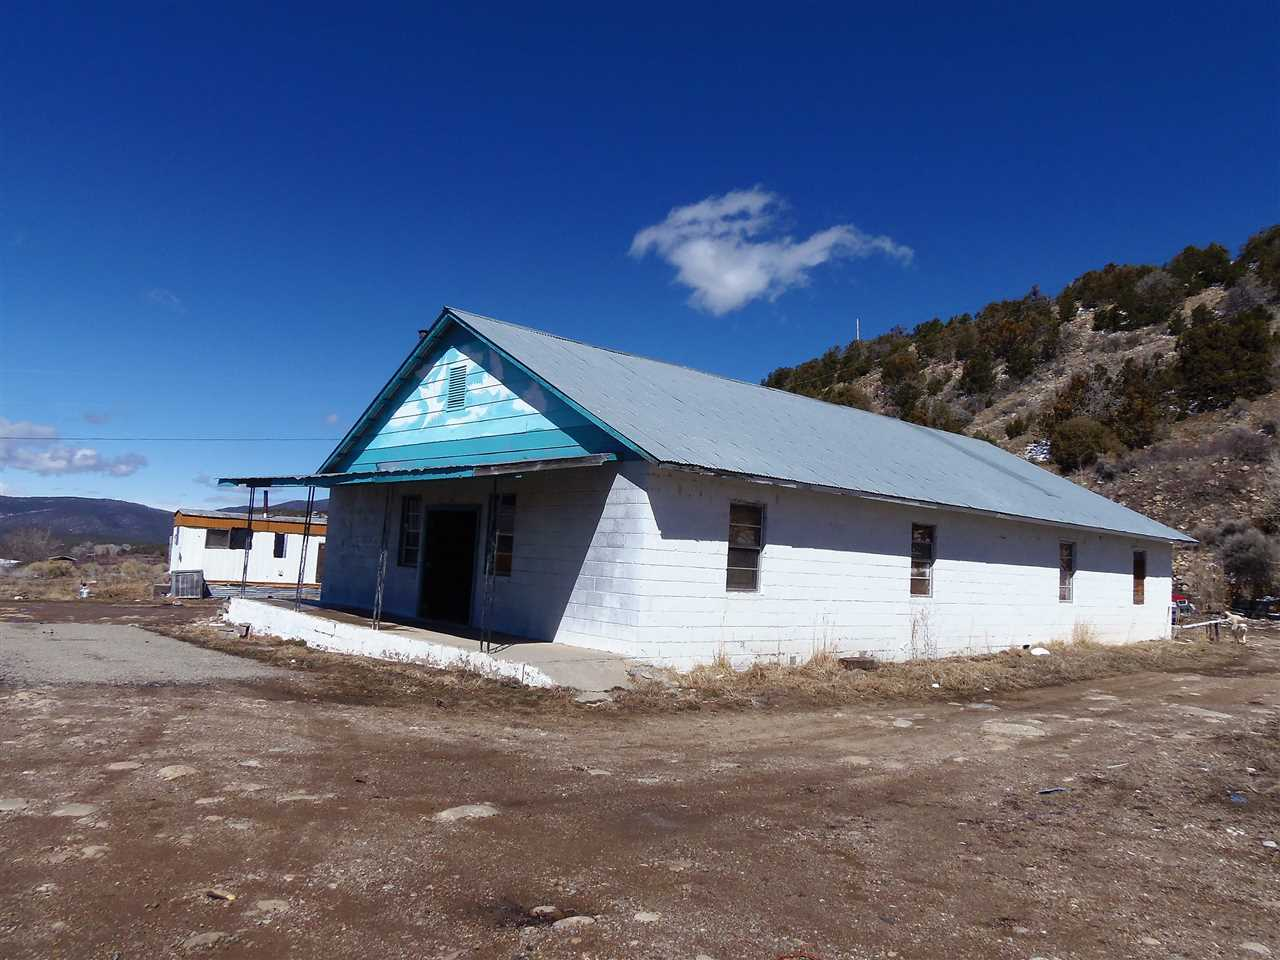 40 and 42 Santa Barbara Road, Vadito, NM 87579